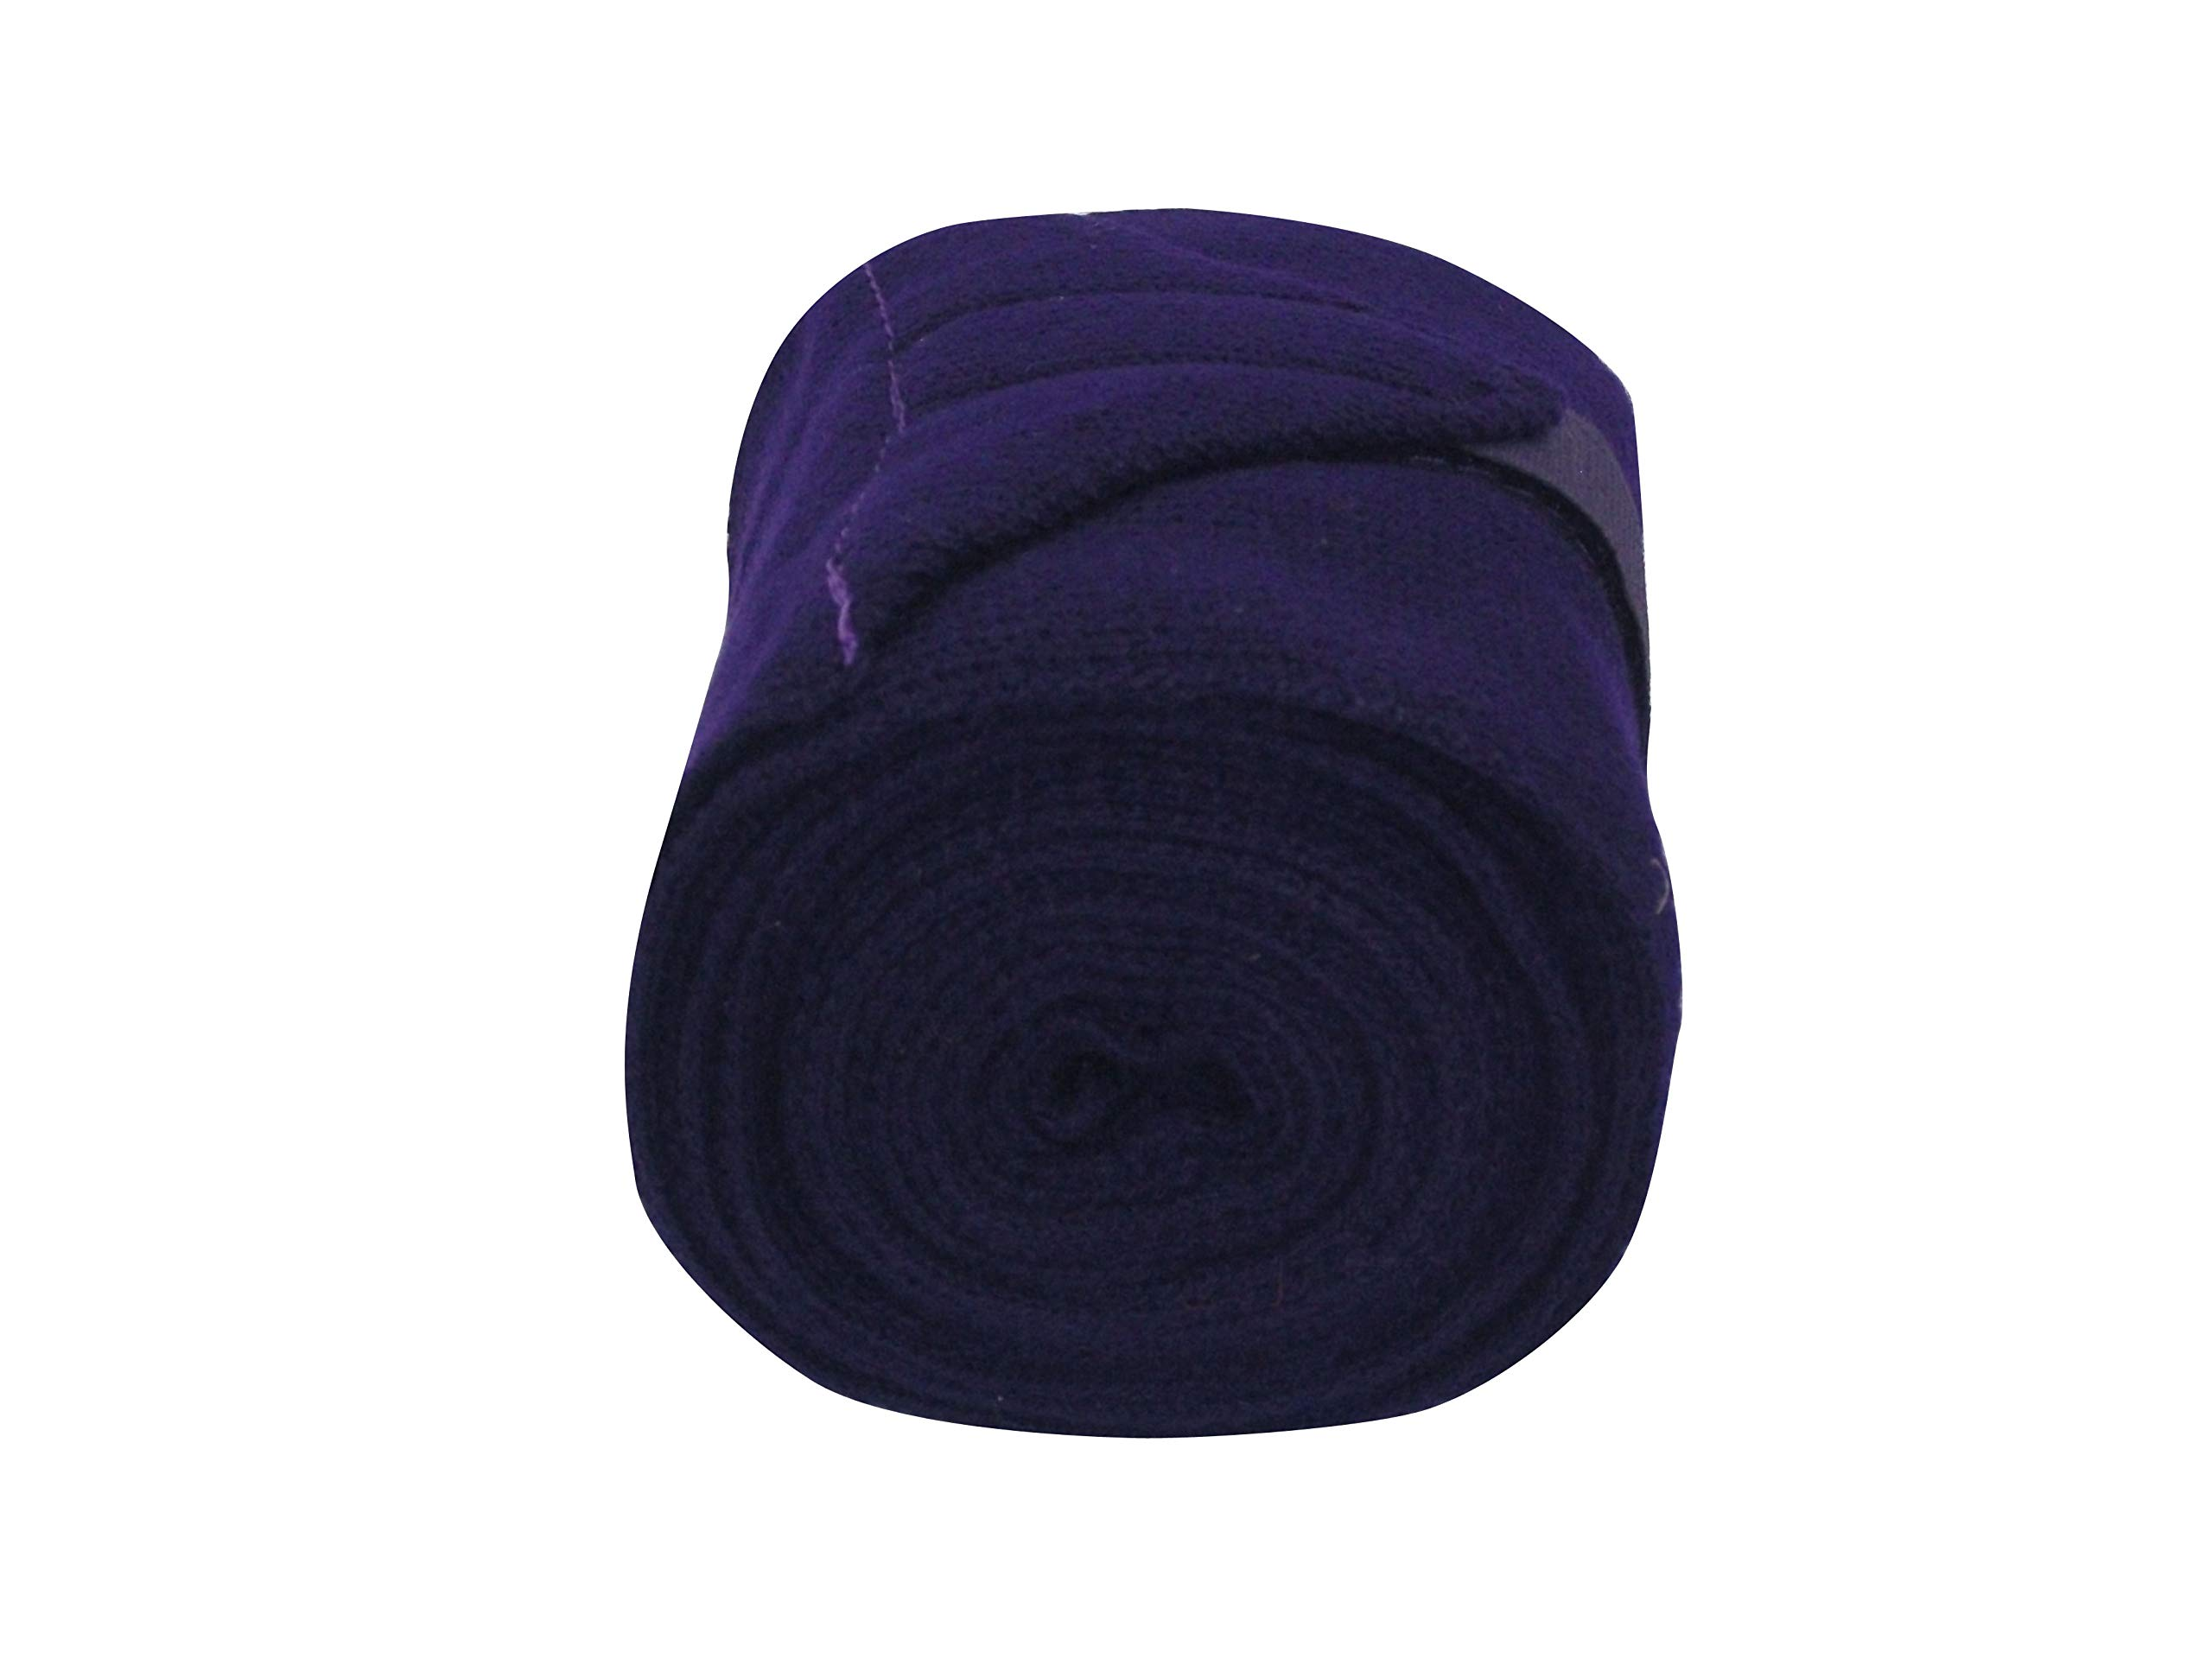 Protack Stable/travel Bandage Knitted : Purple